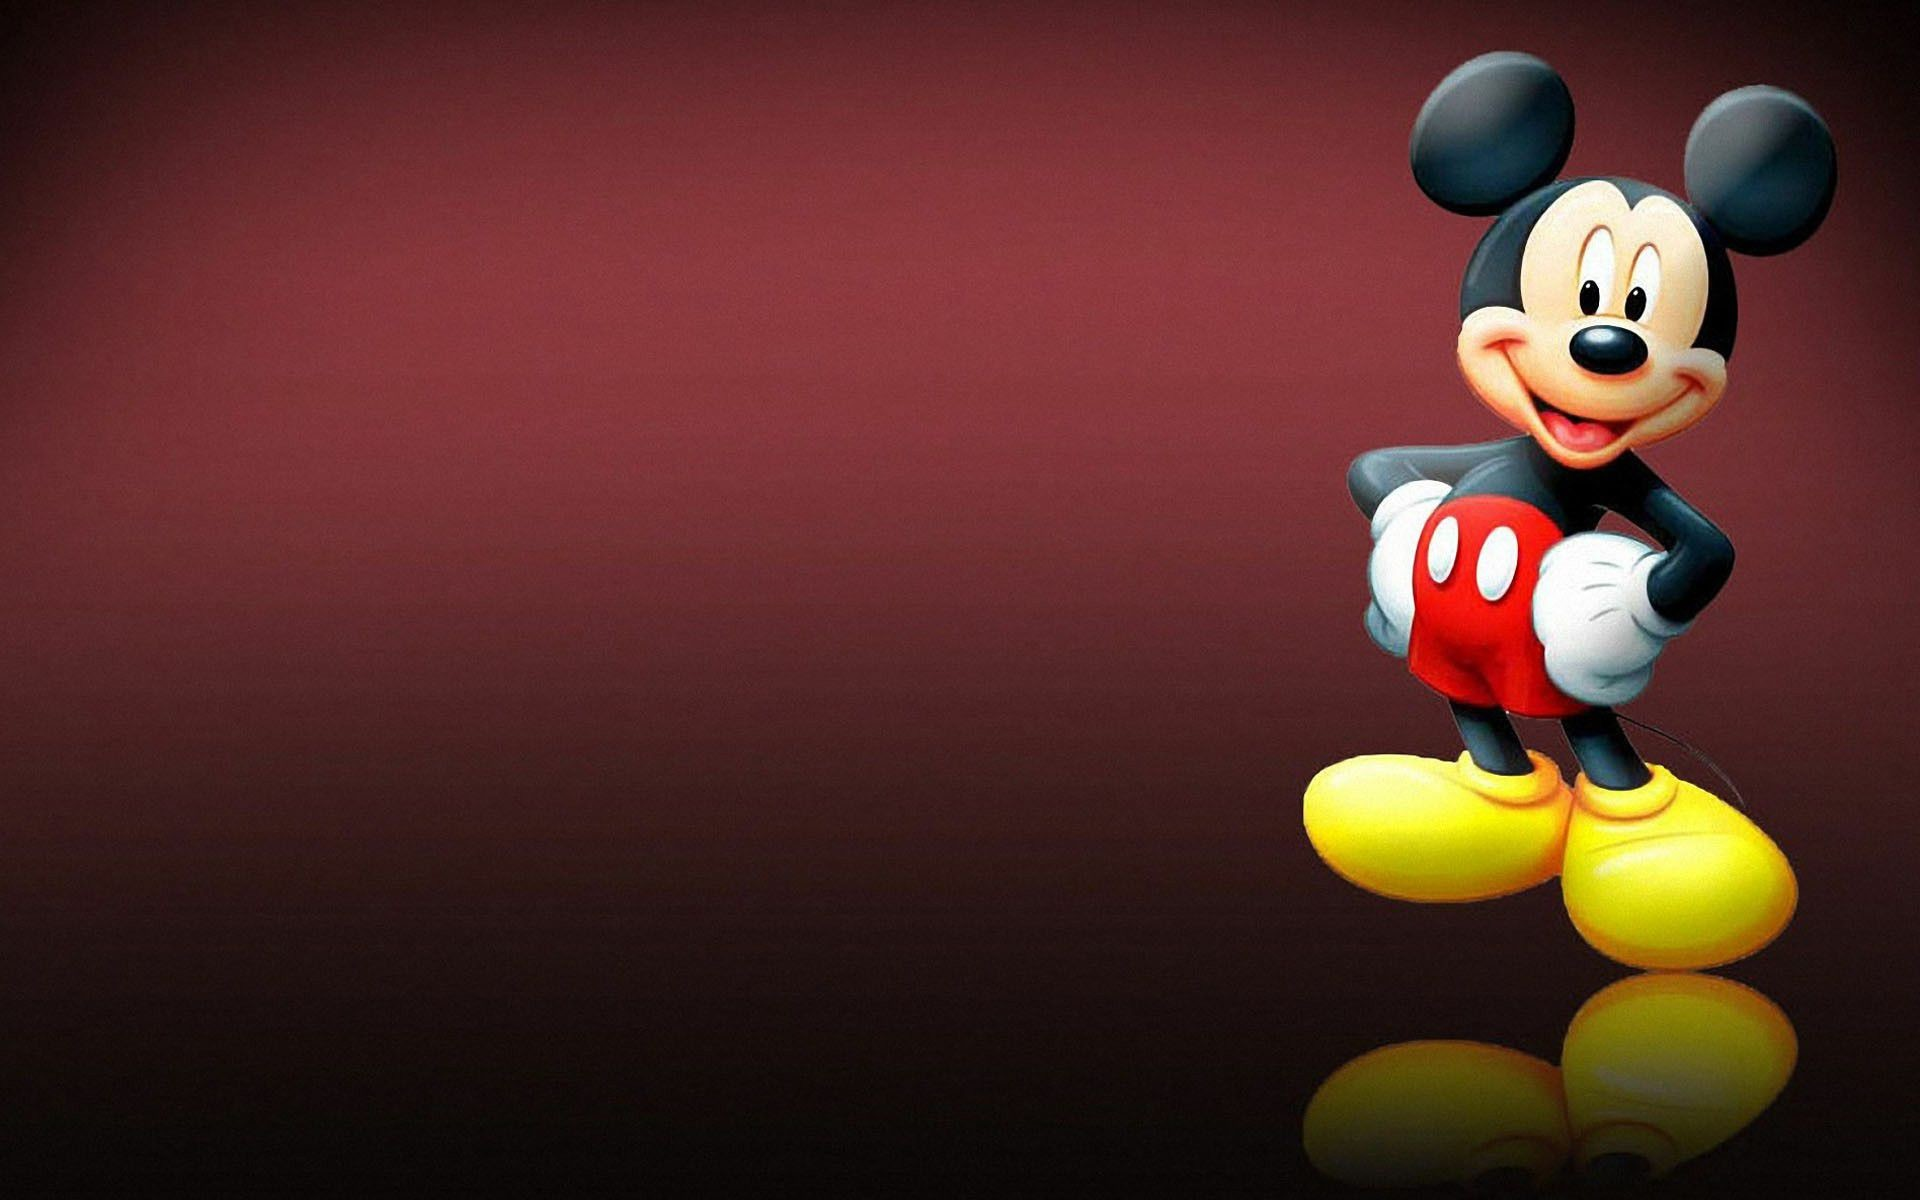 Baby mickey mouse pics